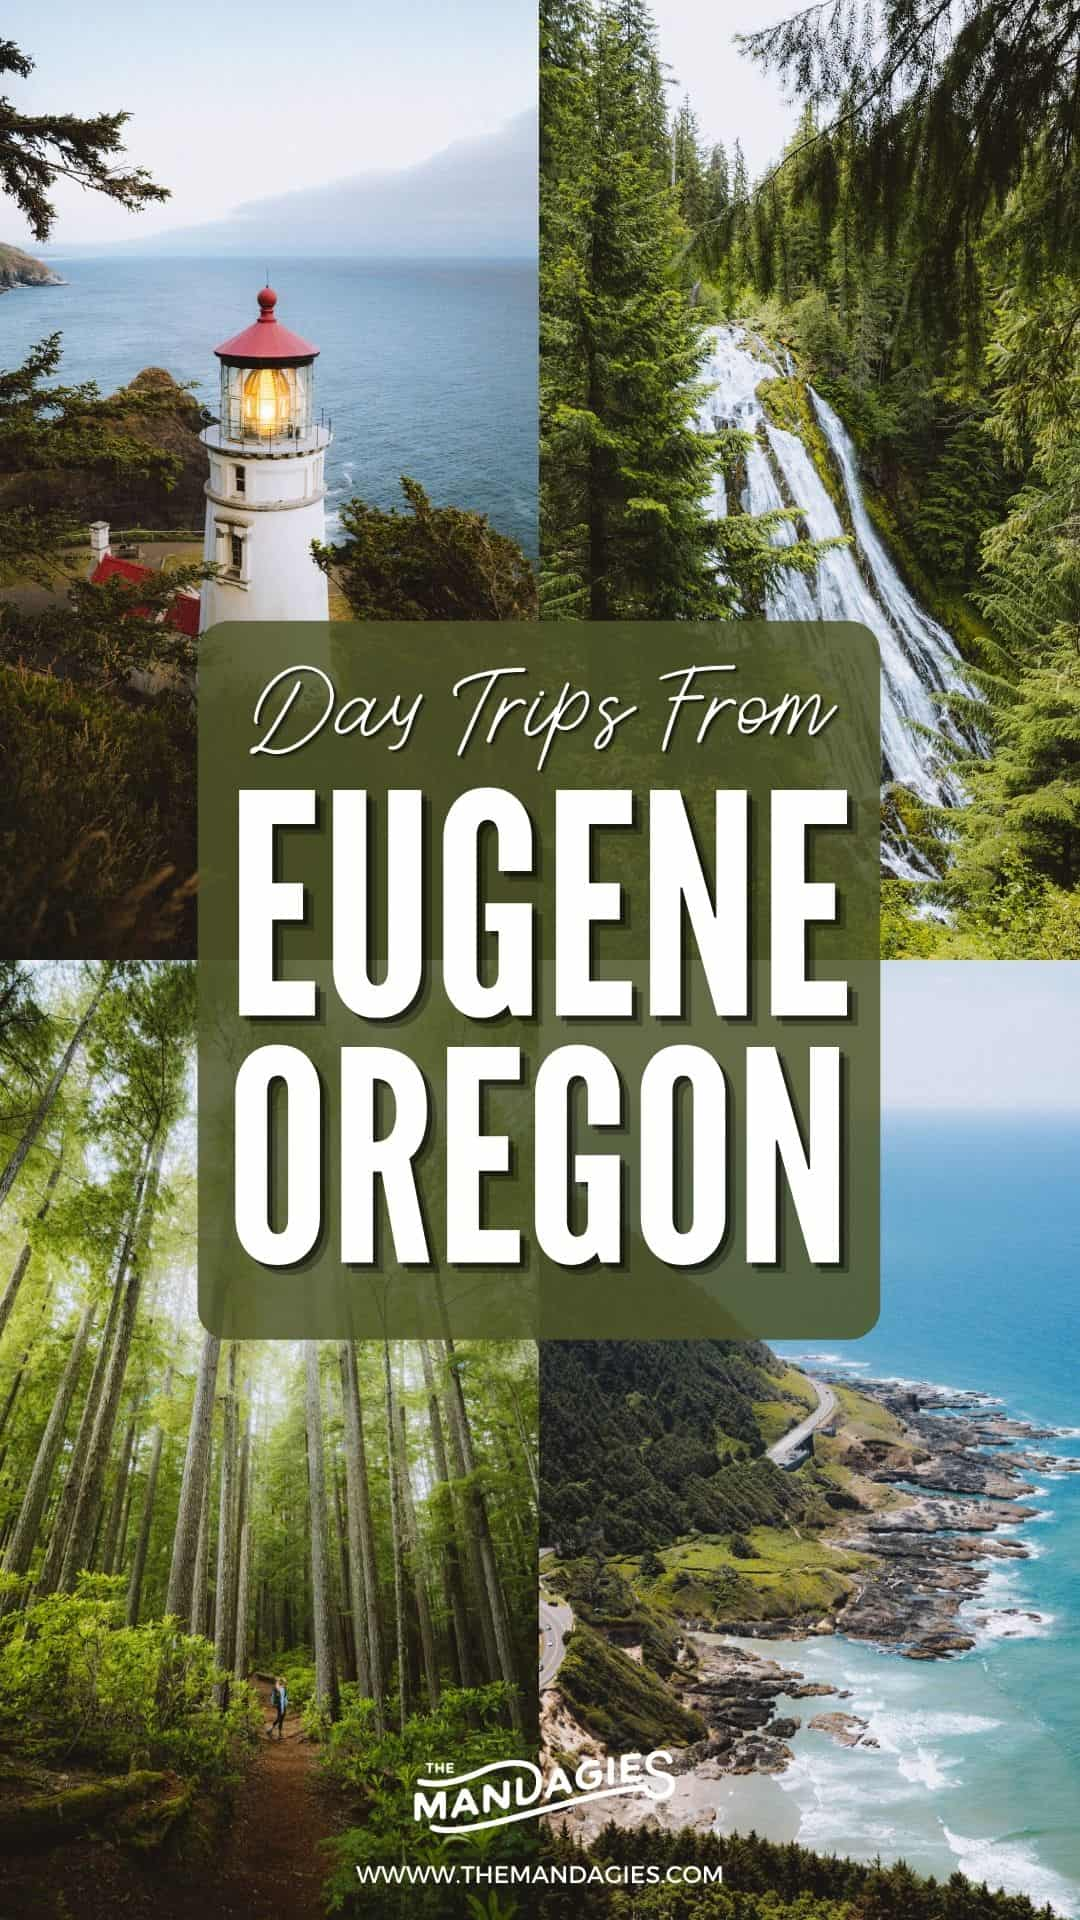 There are so many day trips from Eugene to elevate your trip to Oregon! Discover all the best things to do in Eugene in and around the area, from the Pacific Ocean to the Cascade Mountains! We're sharing epic day trips from Eugene, including Heceta Head Lighthouse, McKenzie River Highway, Sahale and Koosah Falls and so much more! #eugene #oregon #pnw #pacificnorthwest #oregoncoast #cascademountains #roadtrip #daytrip